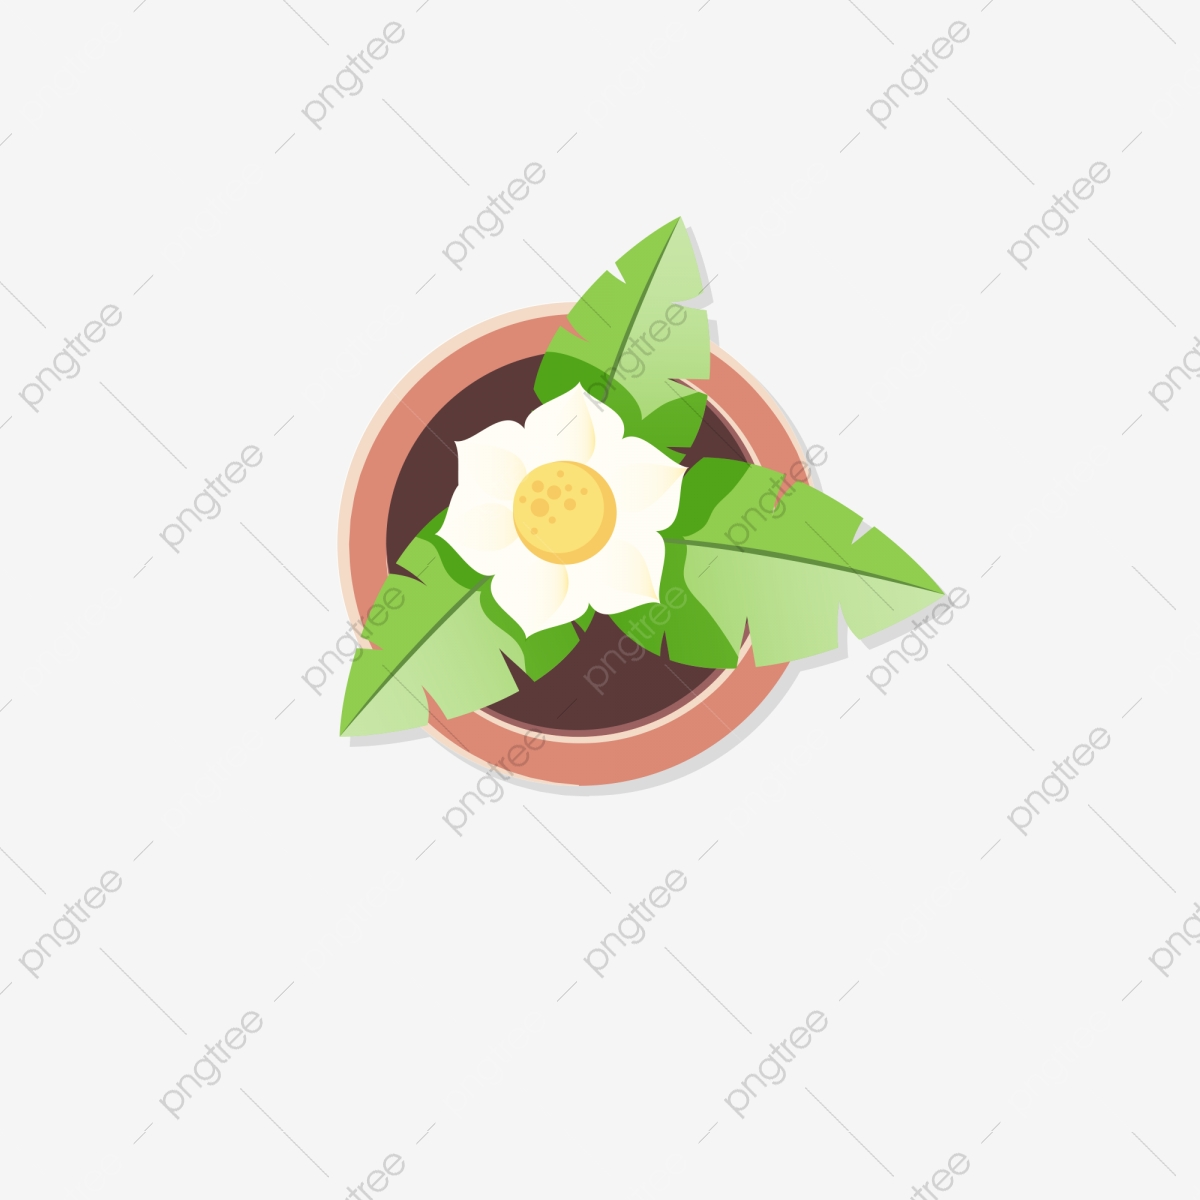 Cartoon Flowers Top View Download Cartoon Flowers Potted Flowers Indoor Green Plants Png Transparent Clipart Image And Psd File For Free Download